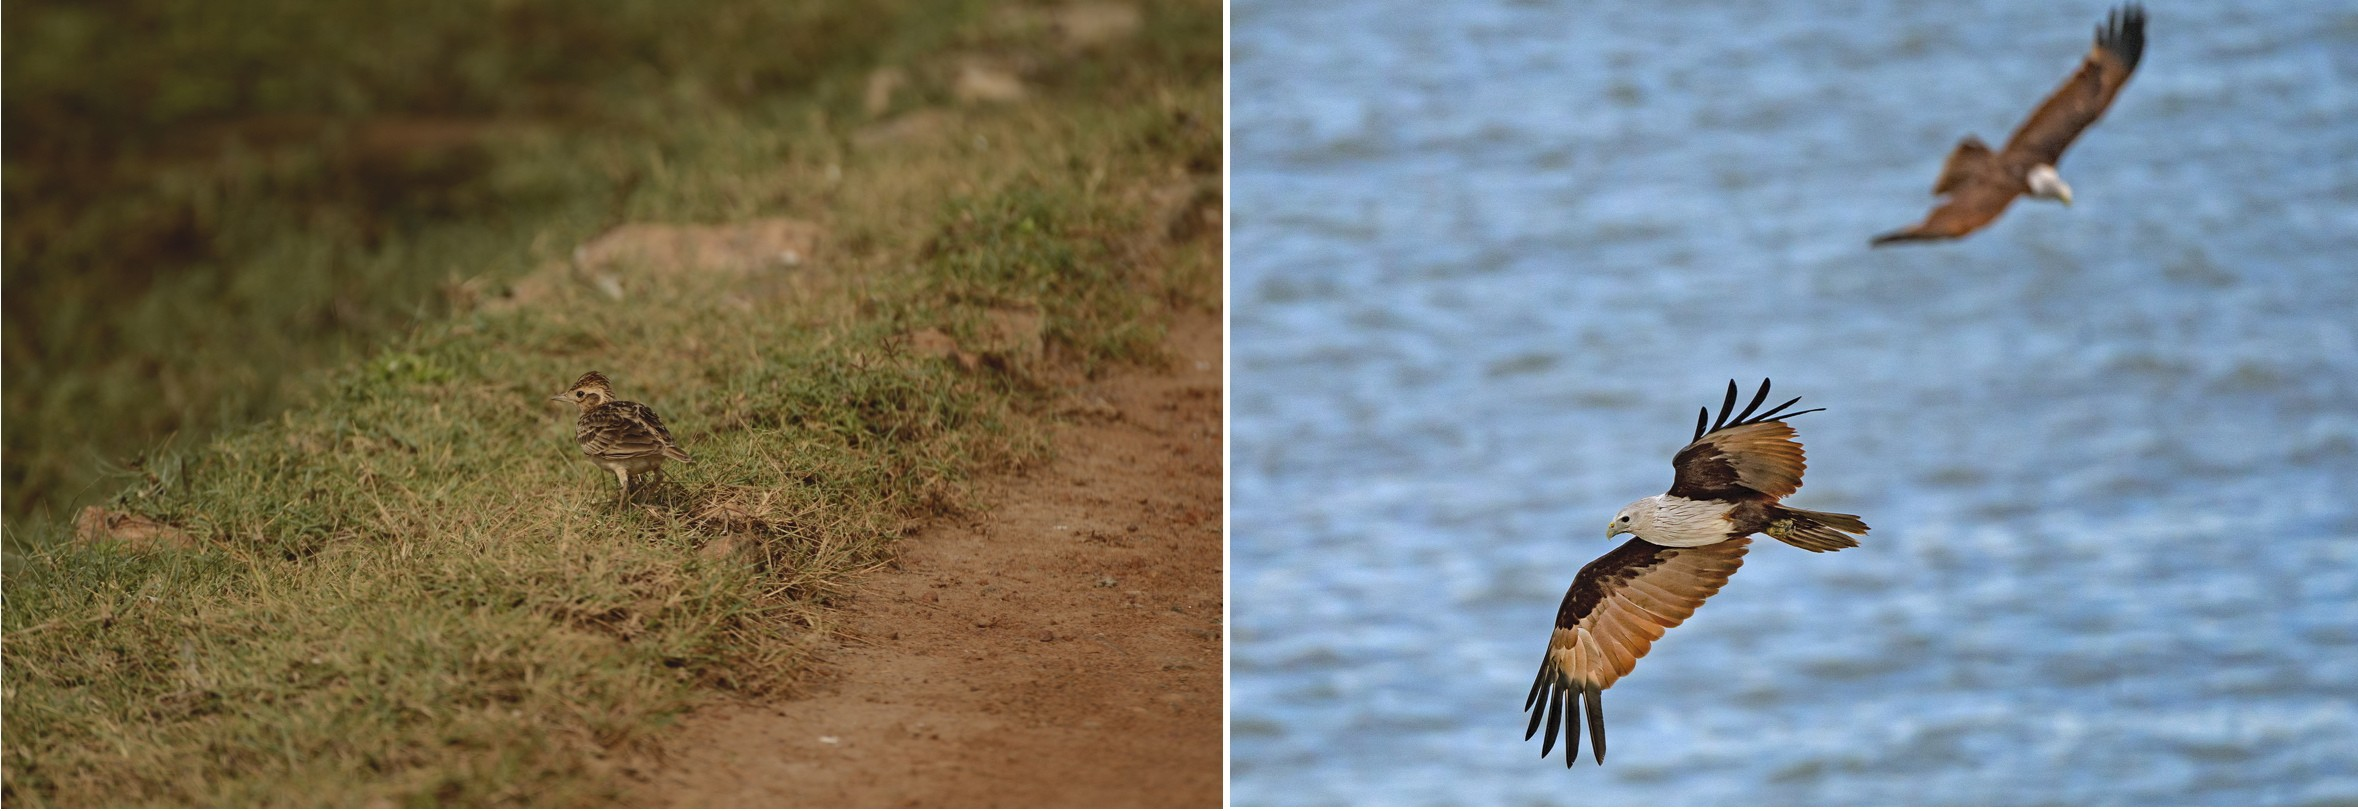 There is promise of sightings in all directions. Look up, and you might catch a brahminy kite (Haliastur indus) hunting for prey, while closer to the ground, smaller species such as the oriental skylark (Alauda gulgula) can be seed foraging for seeds and bugs. Photo: Dhritiman Mukherjee (left), P. Jeganathan CC BY-SA 4.0 (right)